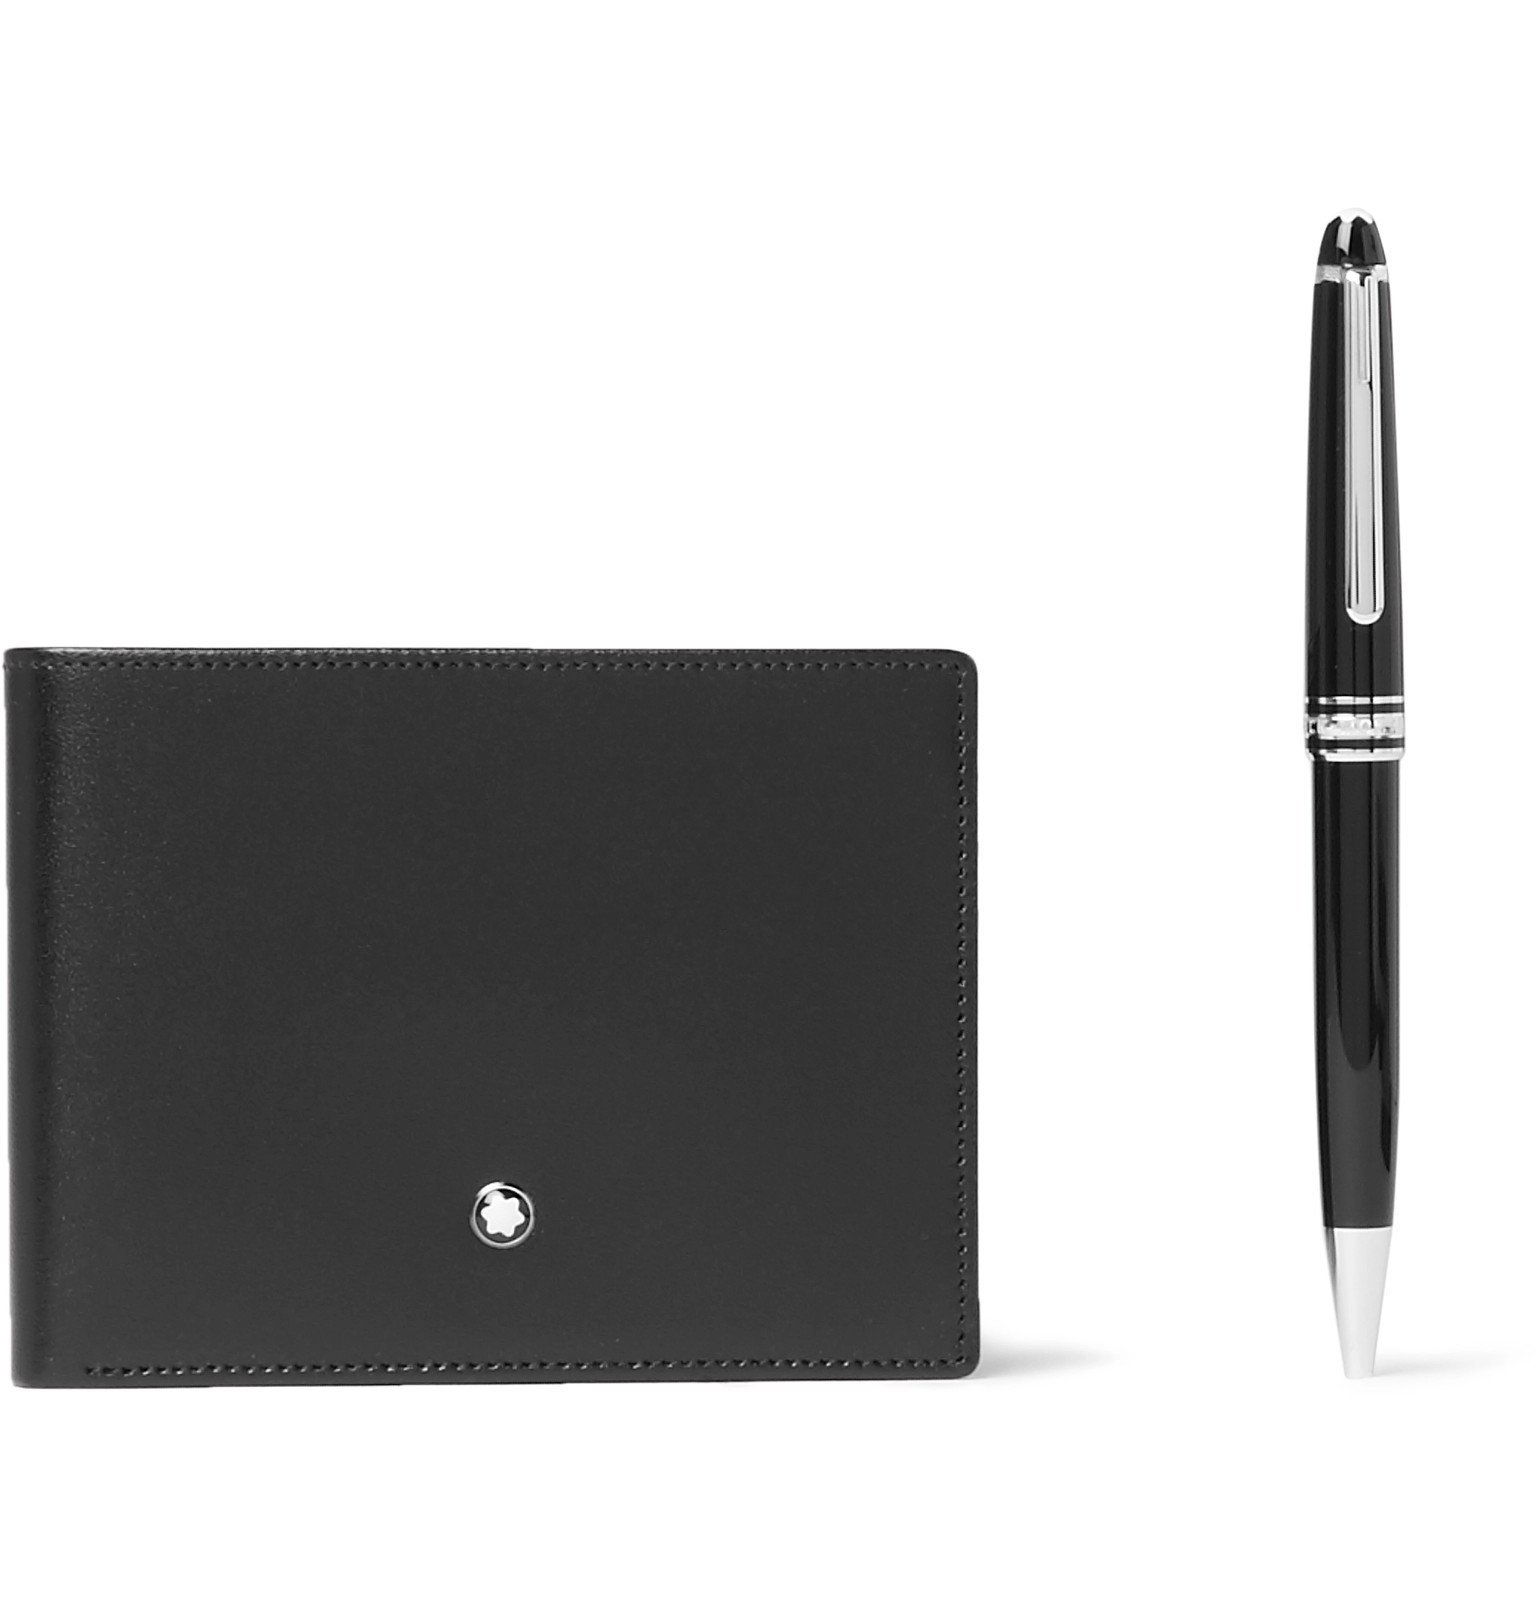 Photo: Montblanc - Meisterstück Leather Billfold Wallet and Classique Resin and Platinum-Plated Ballpoint Pen Set - Black